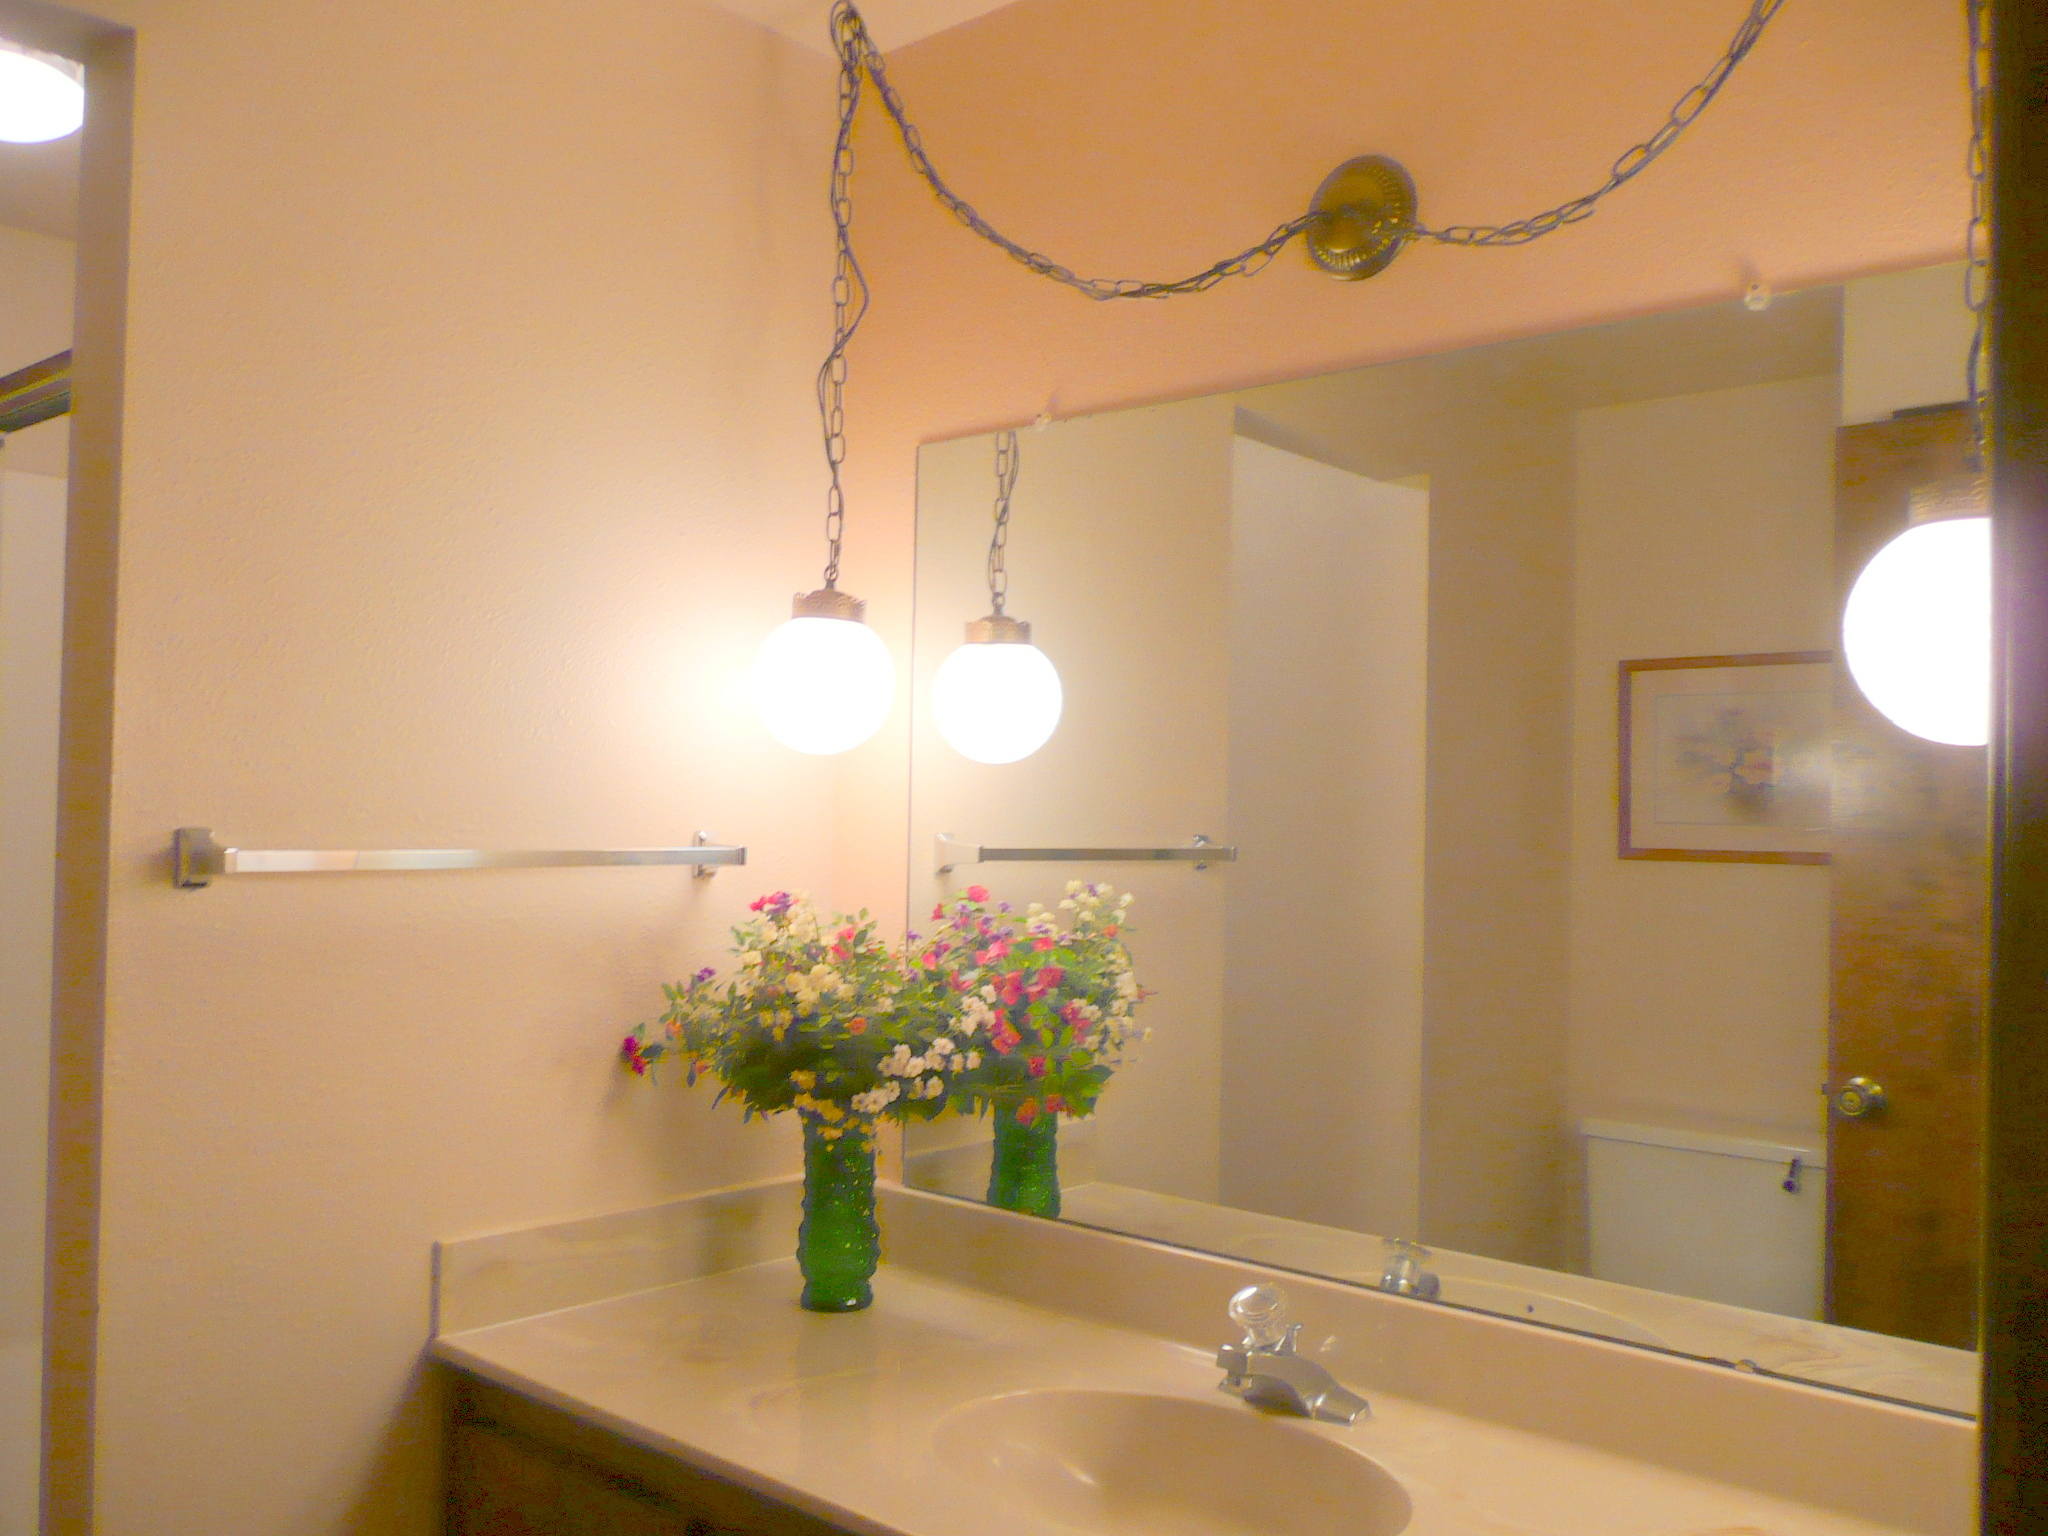 Bathroom vanity lighting fixtures -  Light Fixtures In Bathrooms If